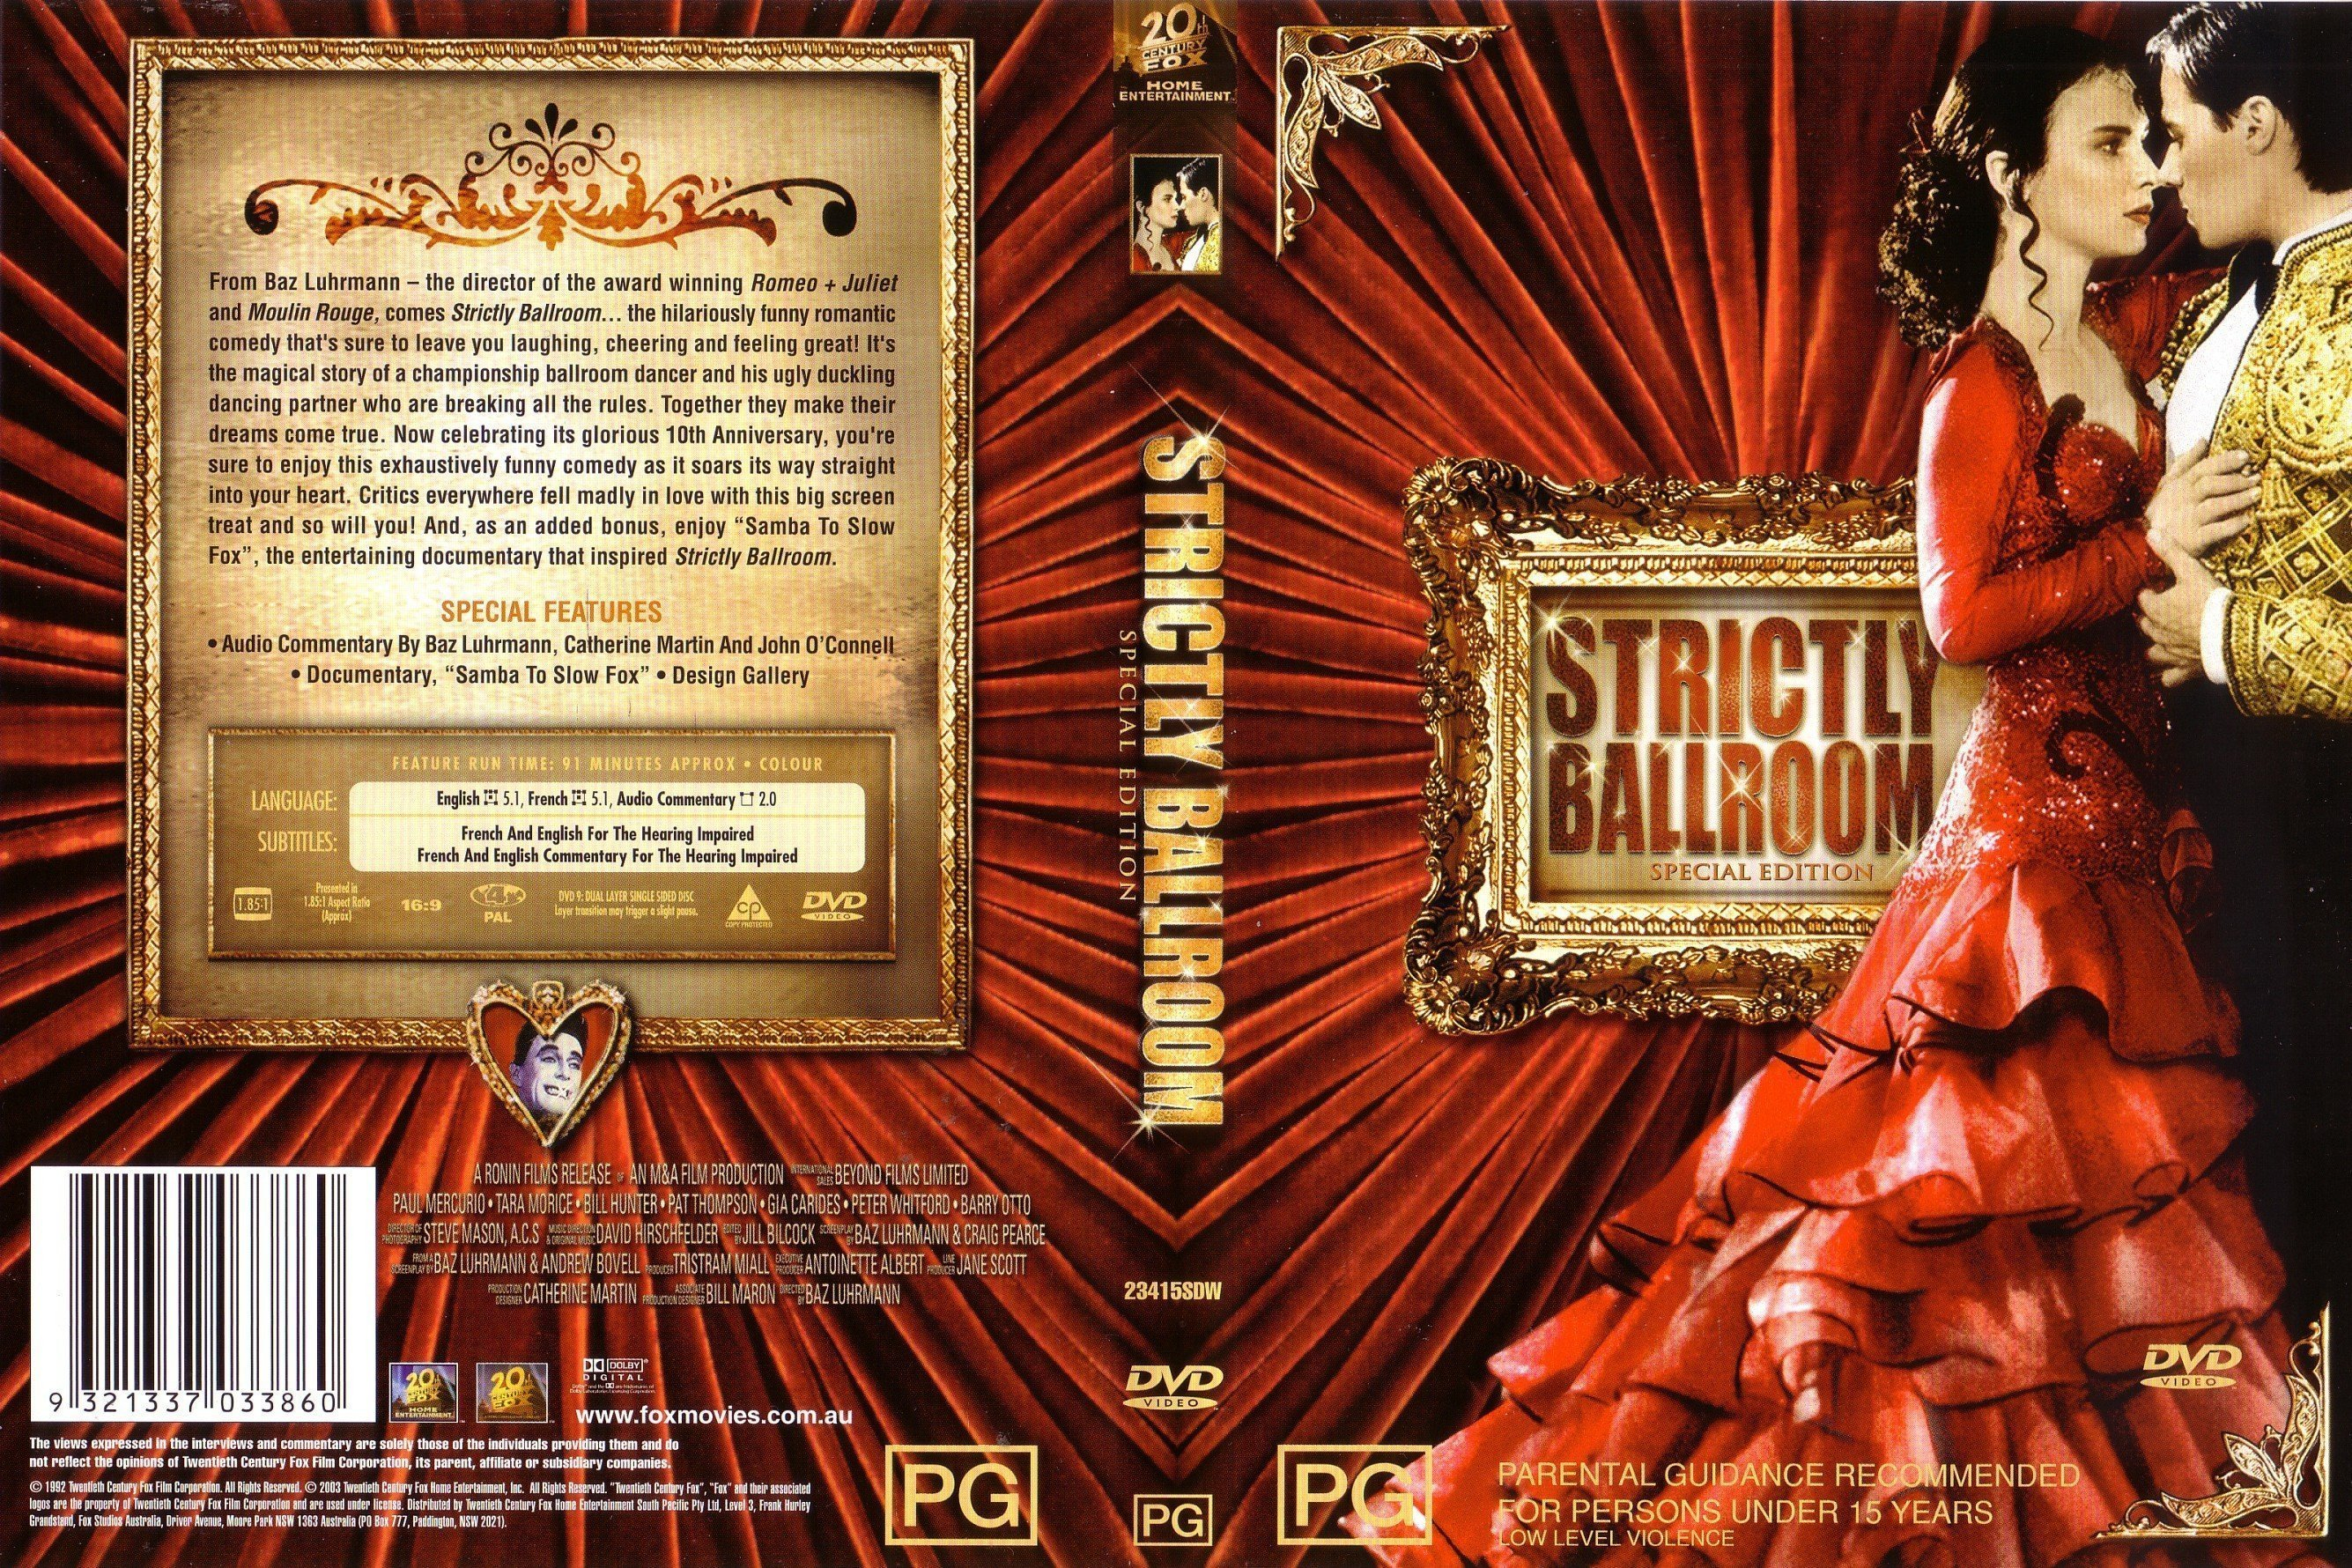 an analysis of strictly ballroom by craig pearce and baz luhrmann